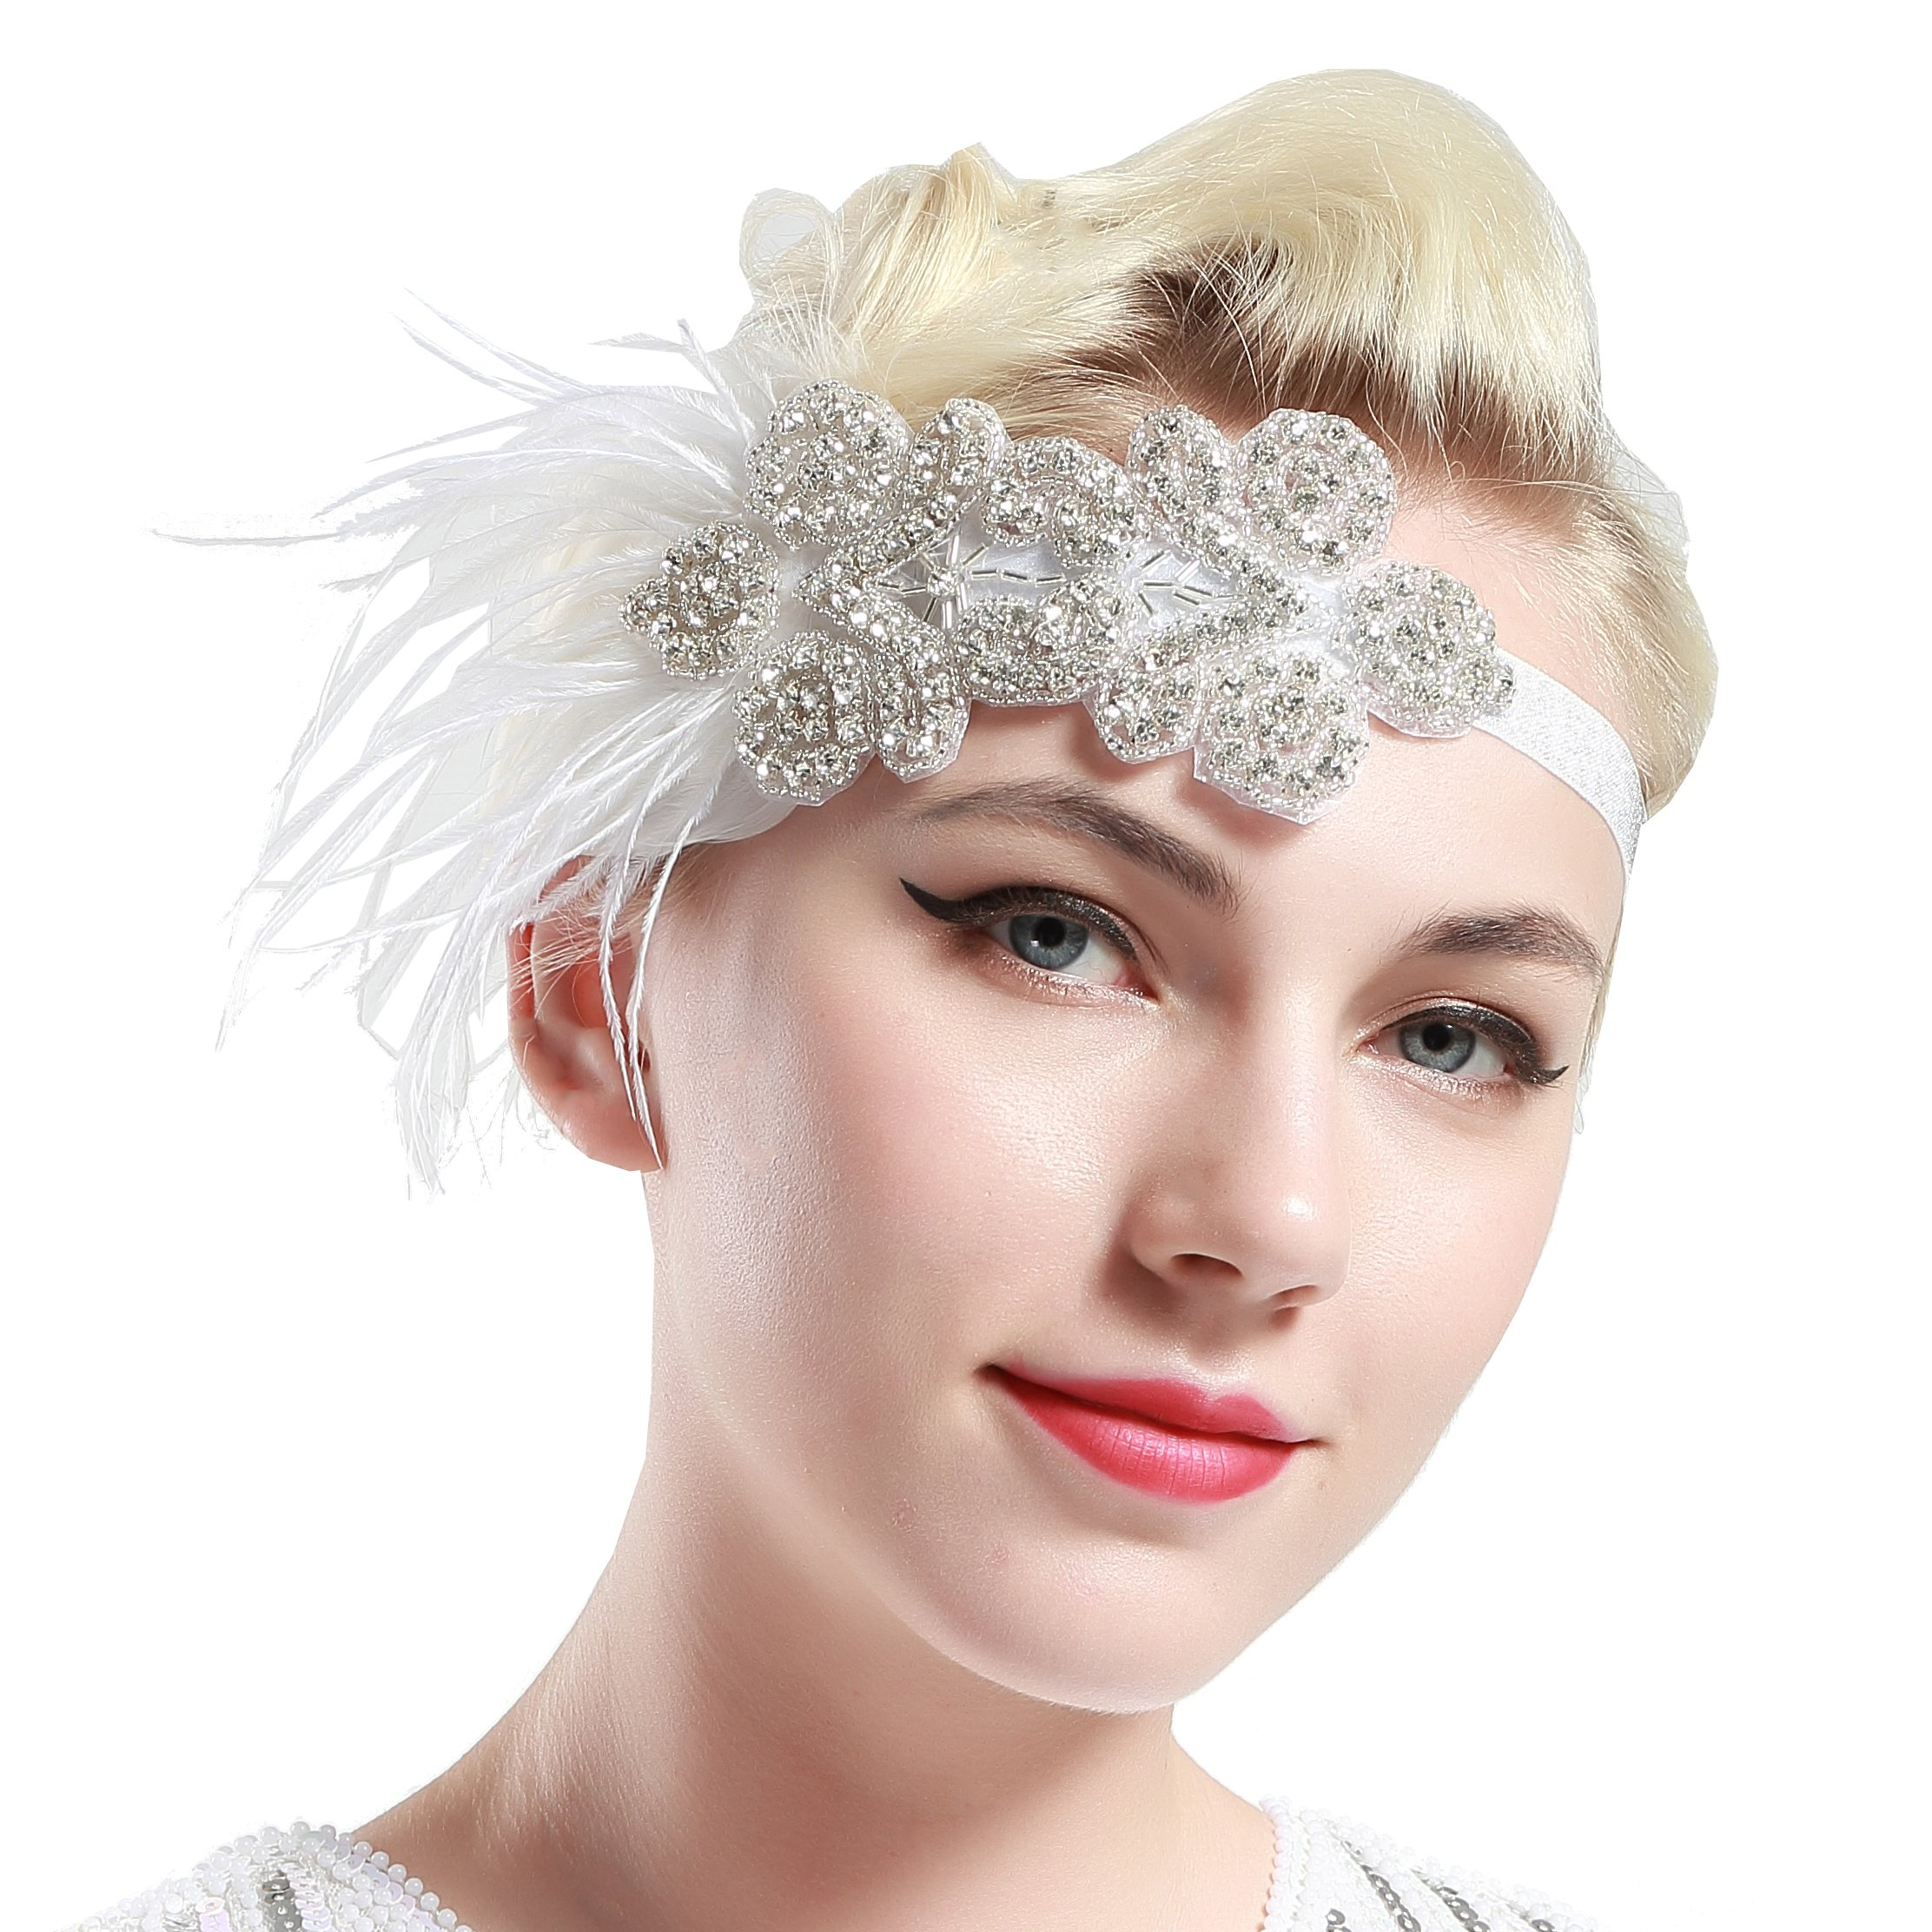 BABEYOND 1920s Flapper Headpiece for Great Gatsby Themed Wedding Roaring 20s Bridal Feather Headband 1920s Flapper Gatsby Hair Accessories (White-2)